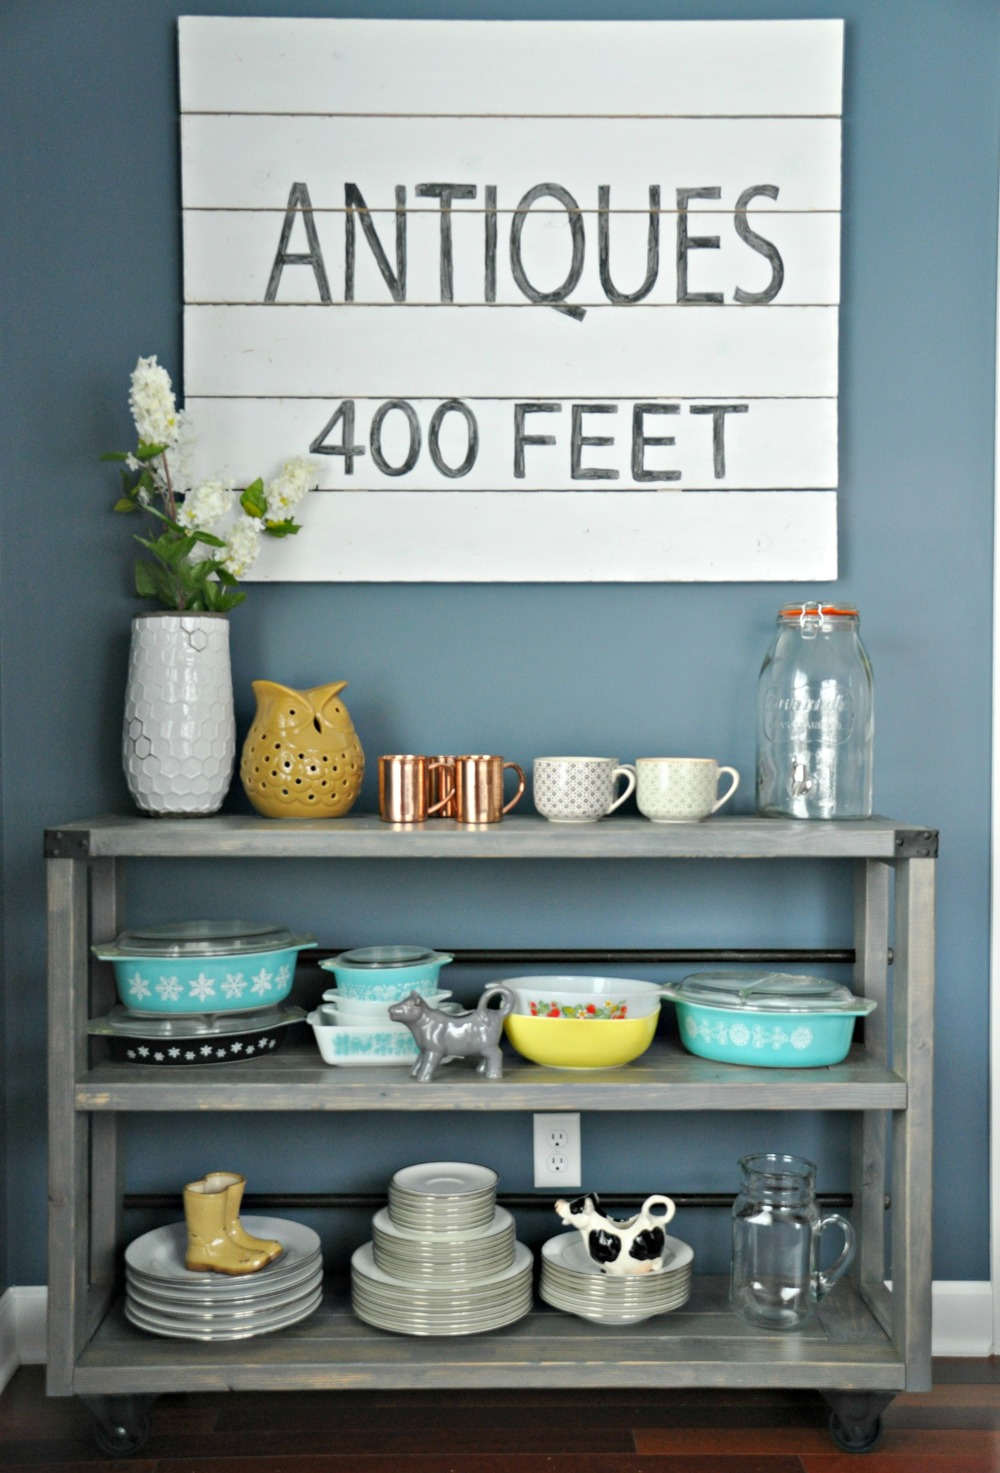 Antiques sign 1.jpg